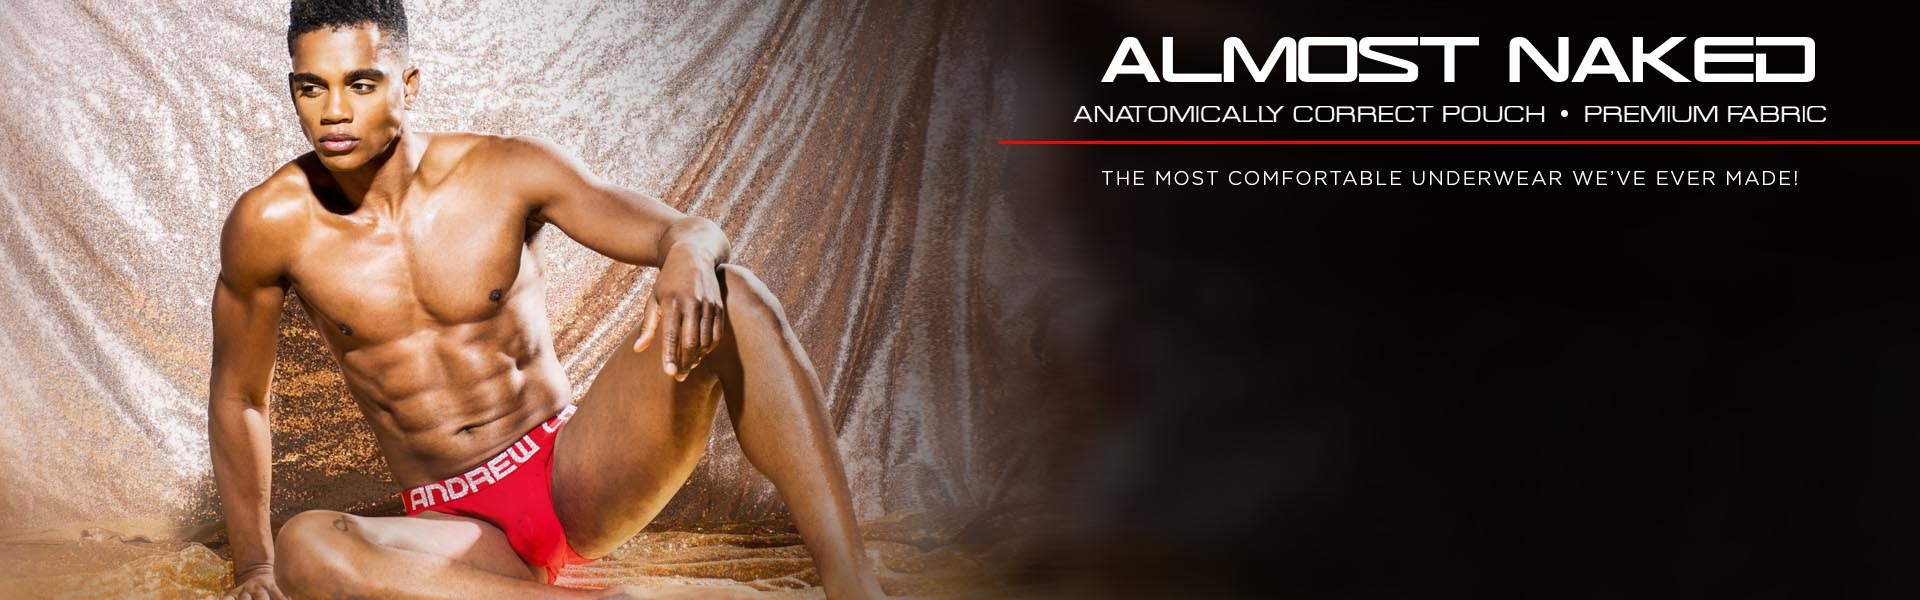 ALMOST NAKED - Anatomical Pouch